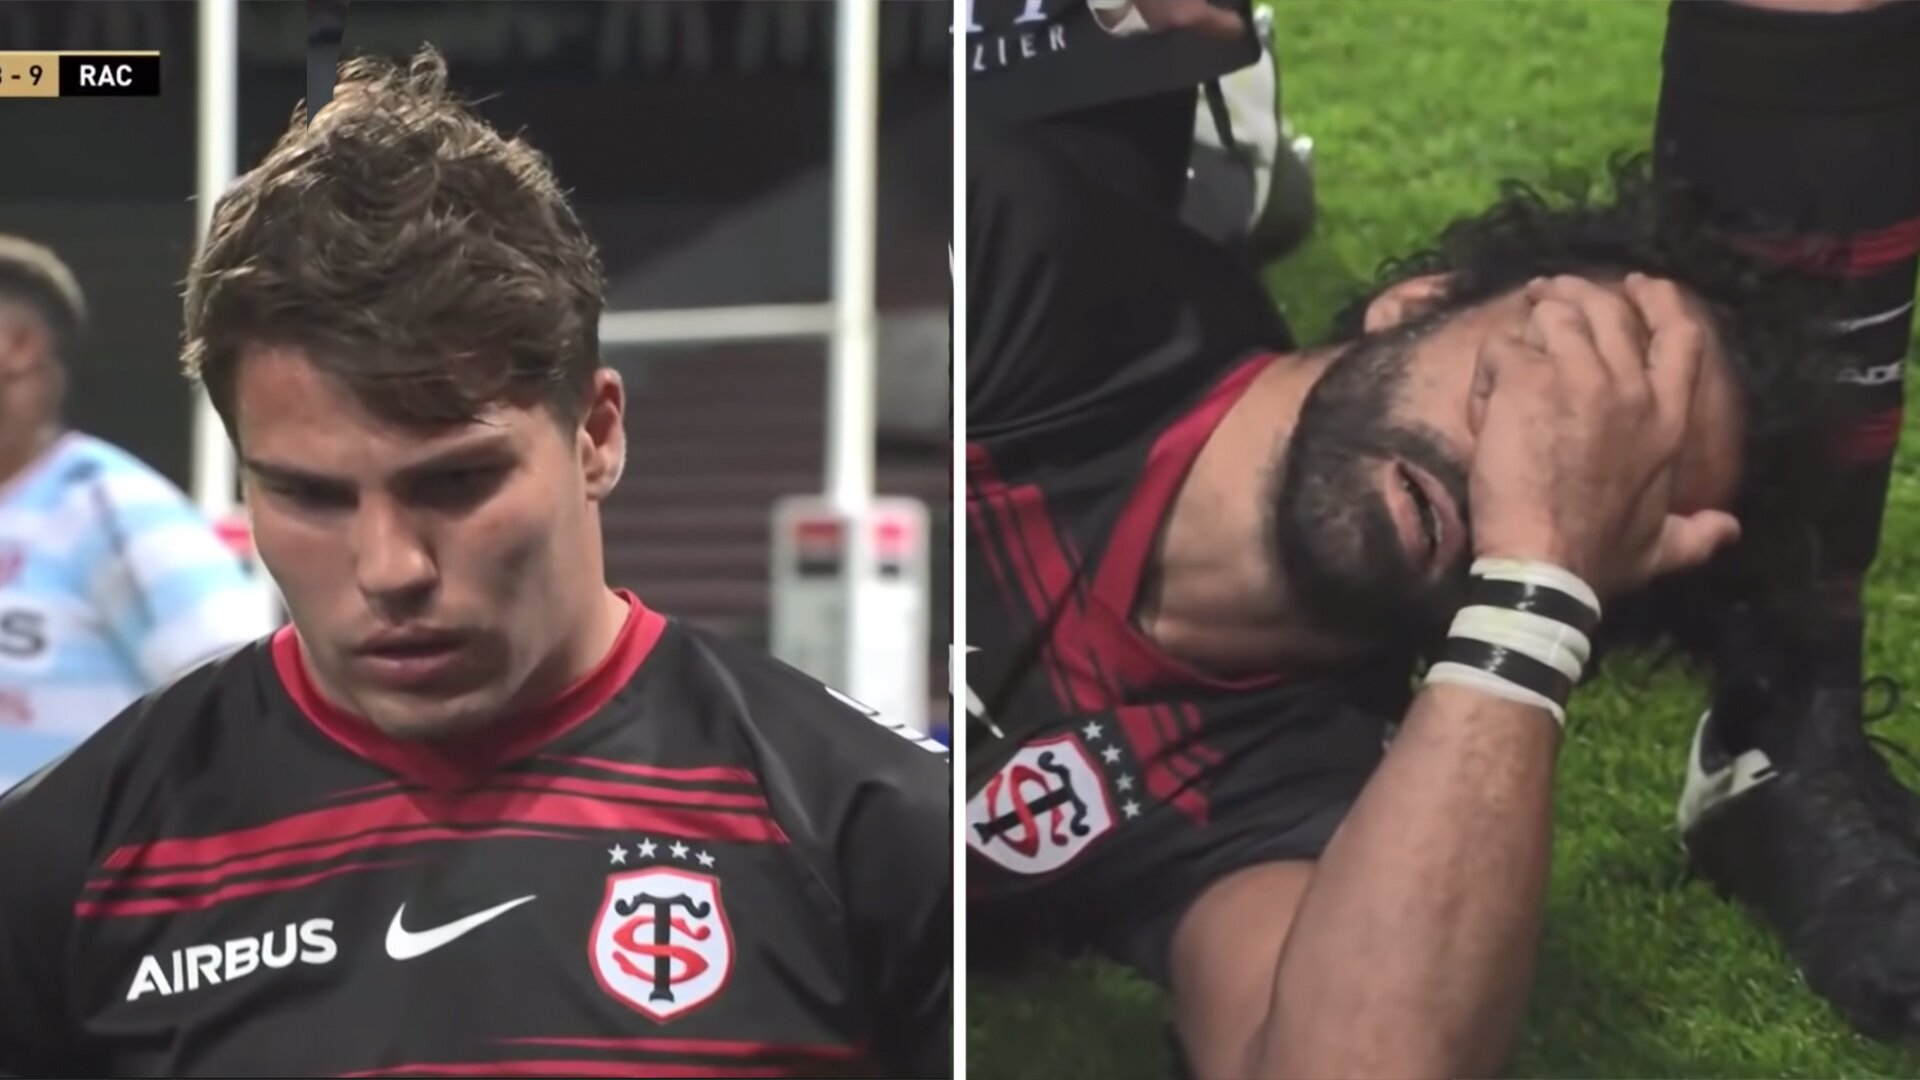 The terrible moment Yoann Huget knew he had suffered a career-ending injury